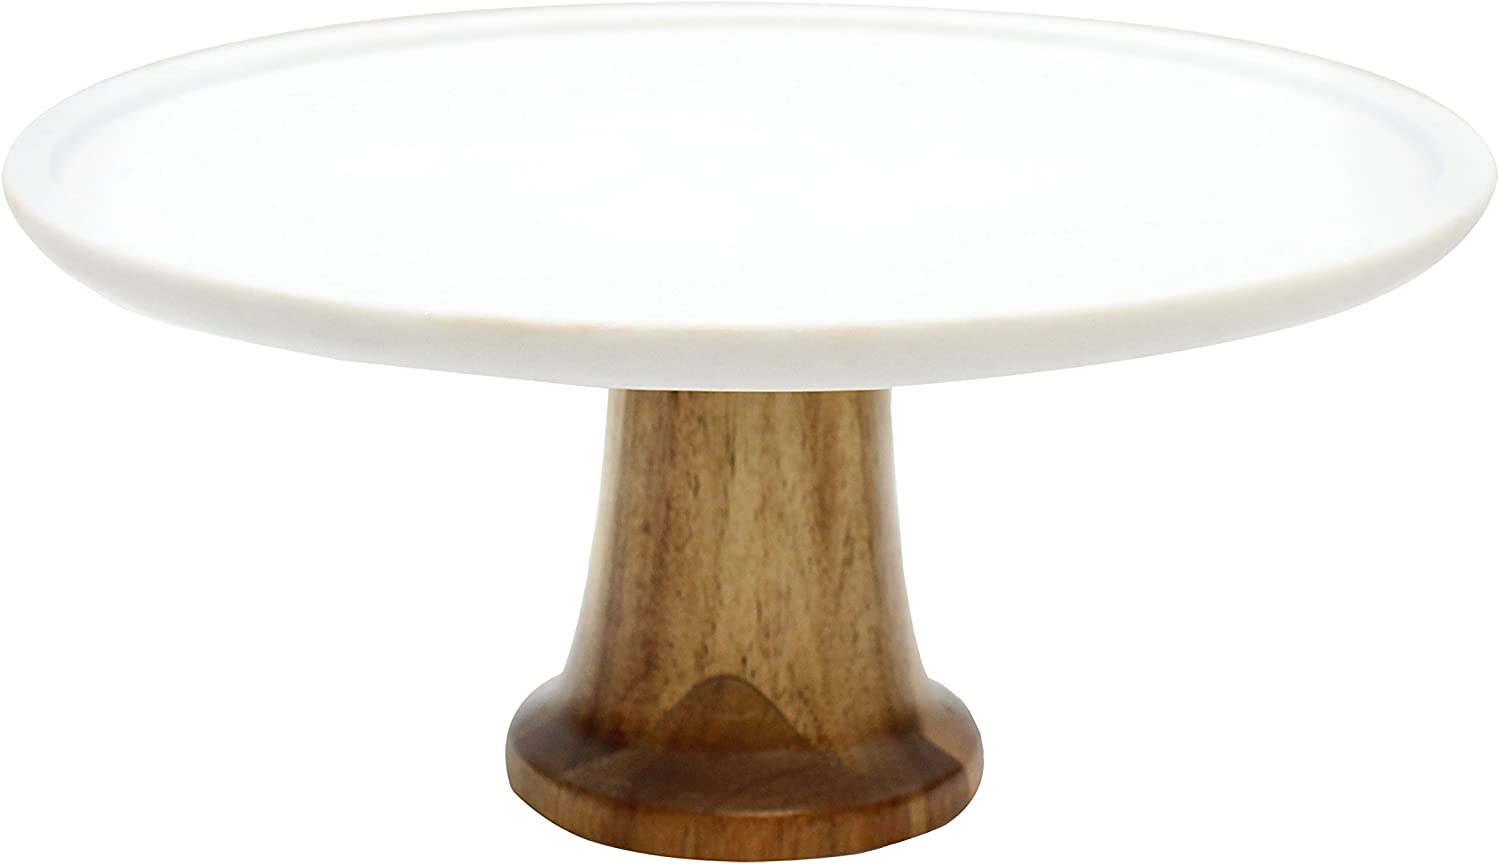 """Tablecraft Elements Collection Cake Stand, 12"""" x 12"""" x 5.5"""", Marble/Acacia"""